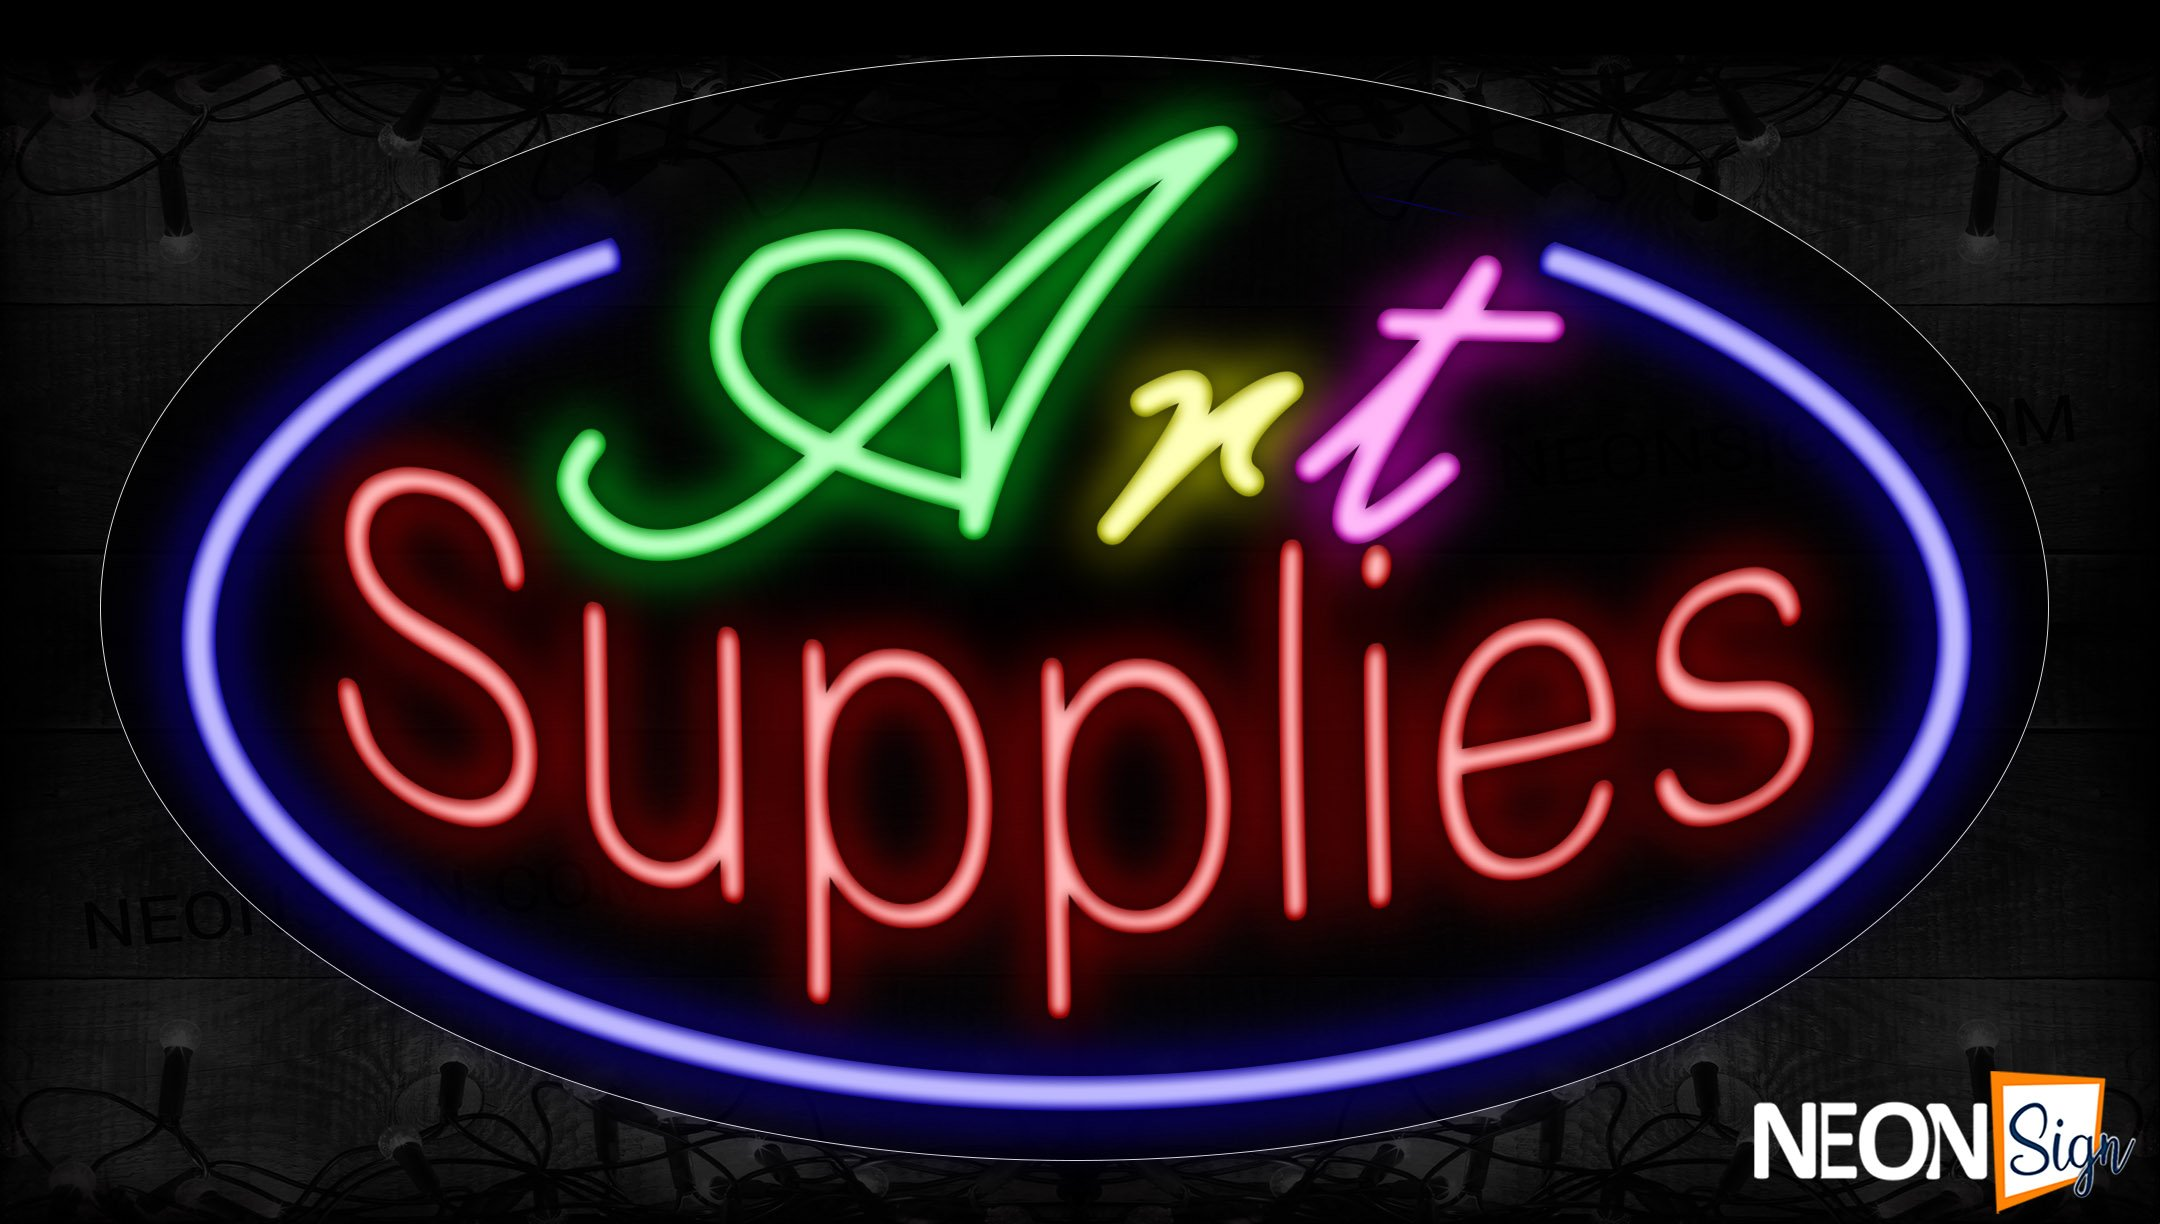 Image of 14379 Art Supplies With Circle Border Neon Signs_17x30 Contoured Black Backing